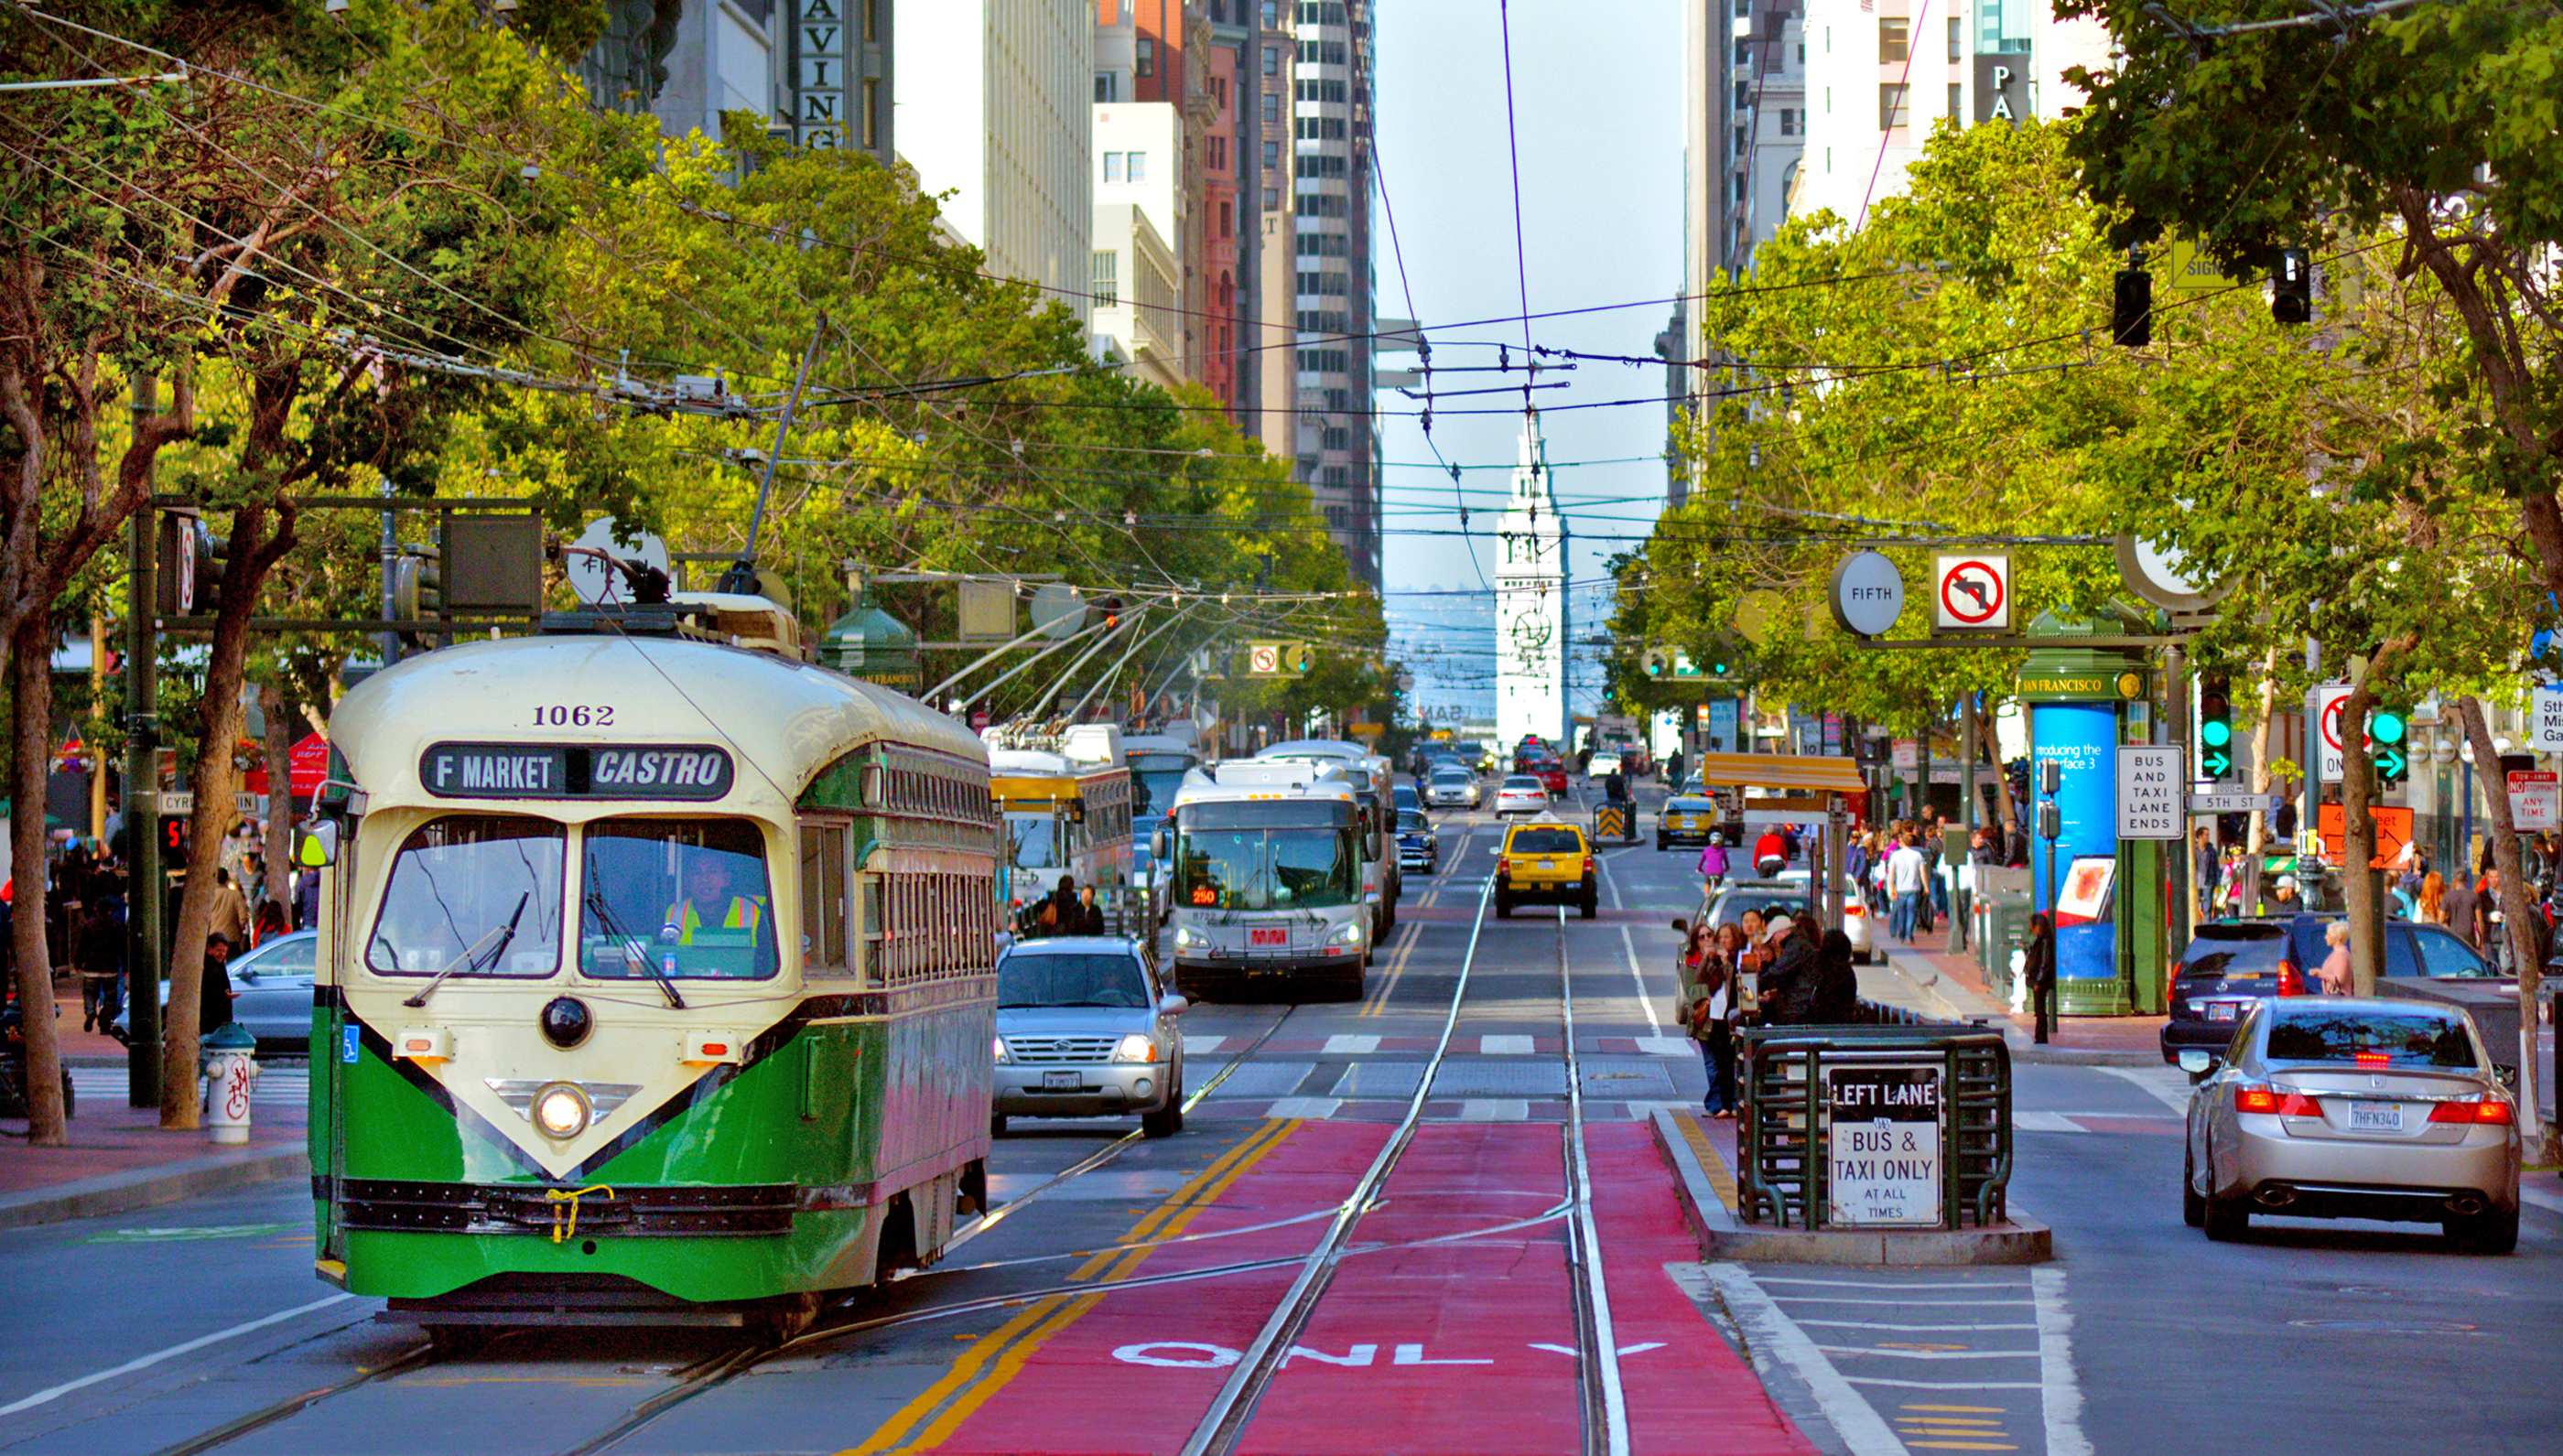 Starting January 29, Market Street will ban (most) cars downtown